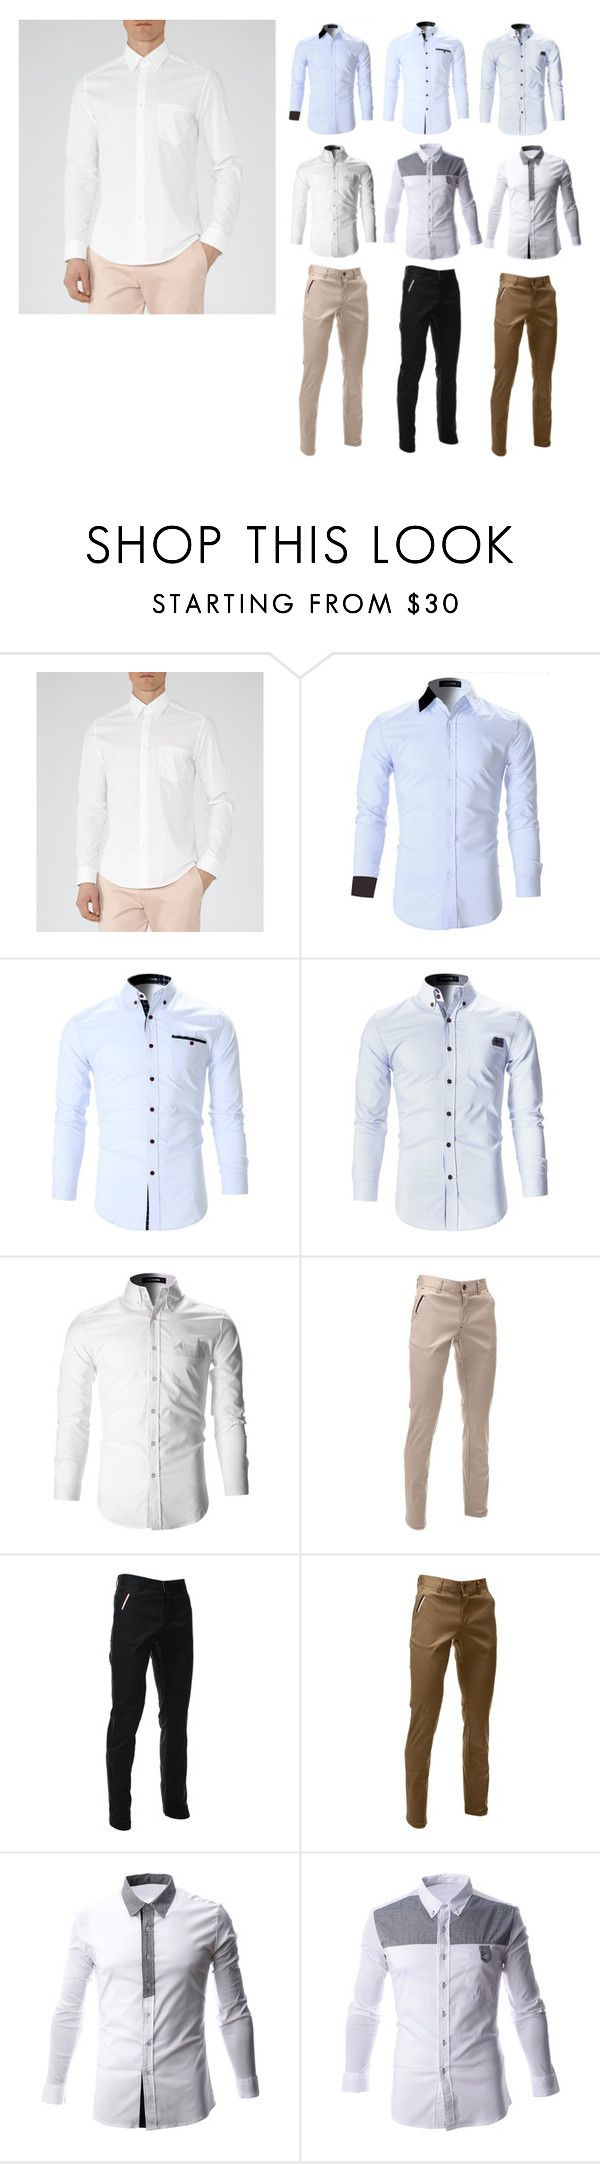 """White shirt for men"" by flatseven on Polyvore featuring men's fashion and menswear"